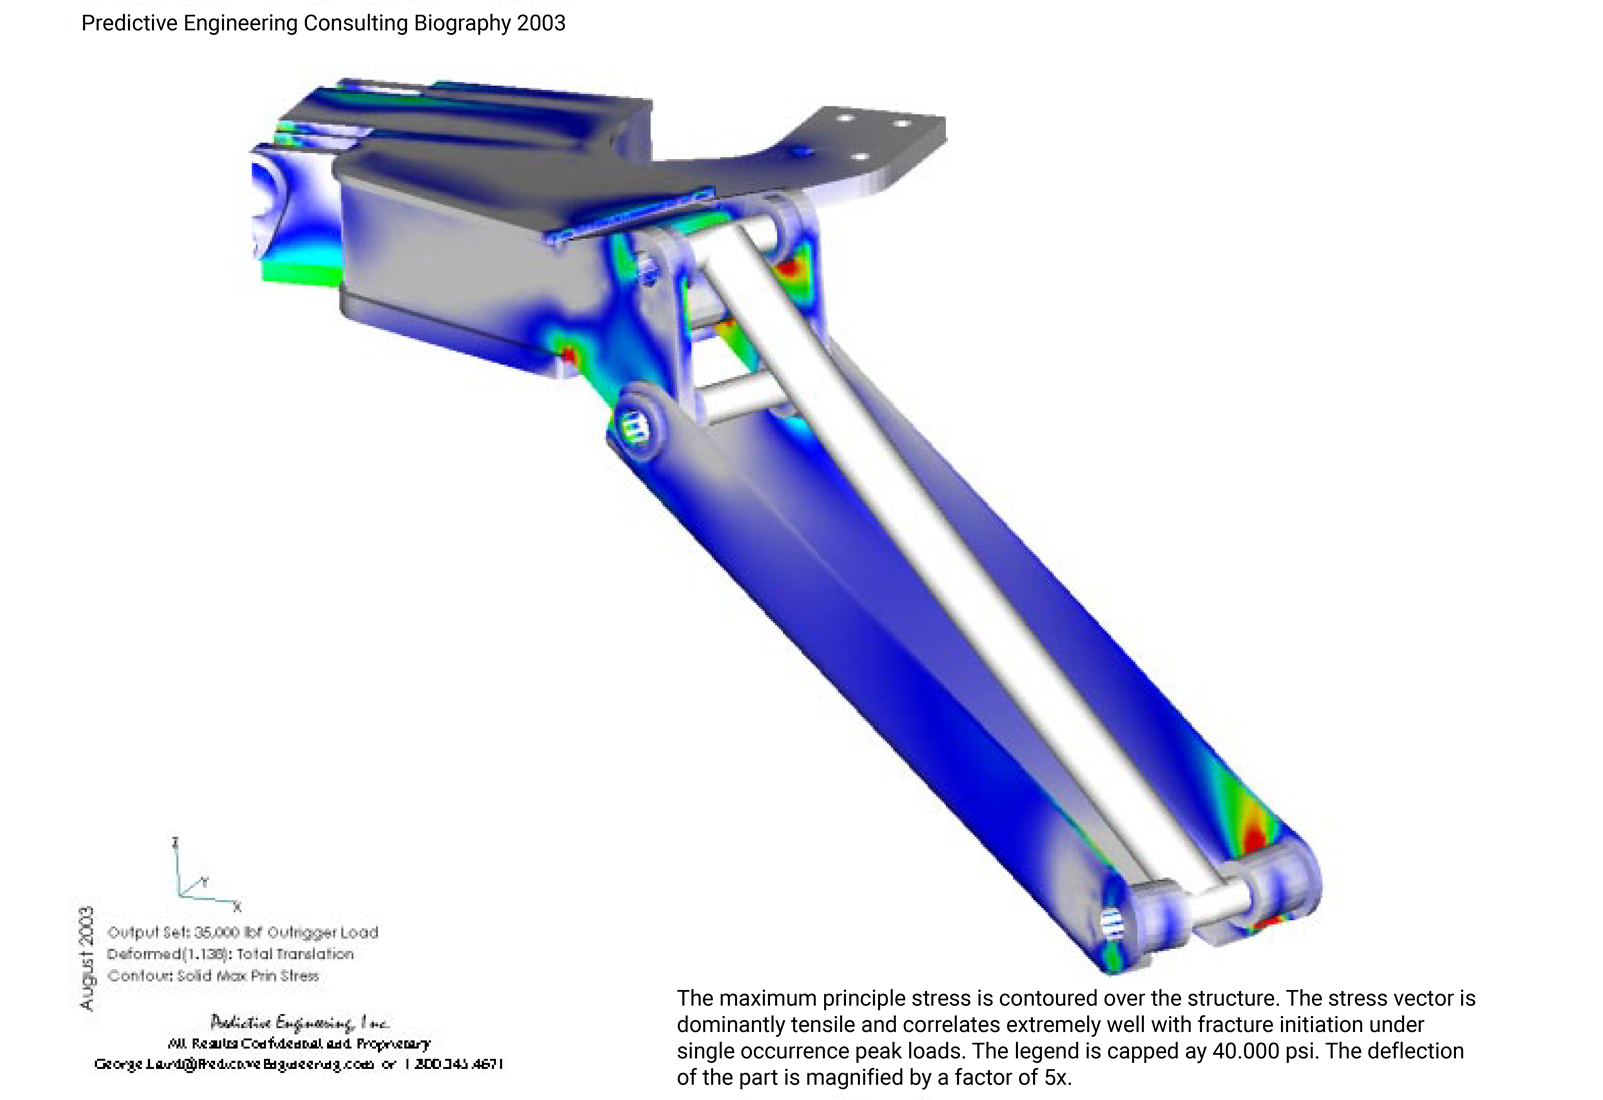 The maximum principle stress is contoured over the structure outrigger arm of the lift truck